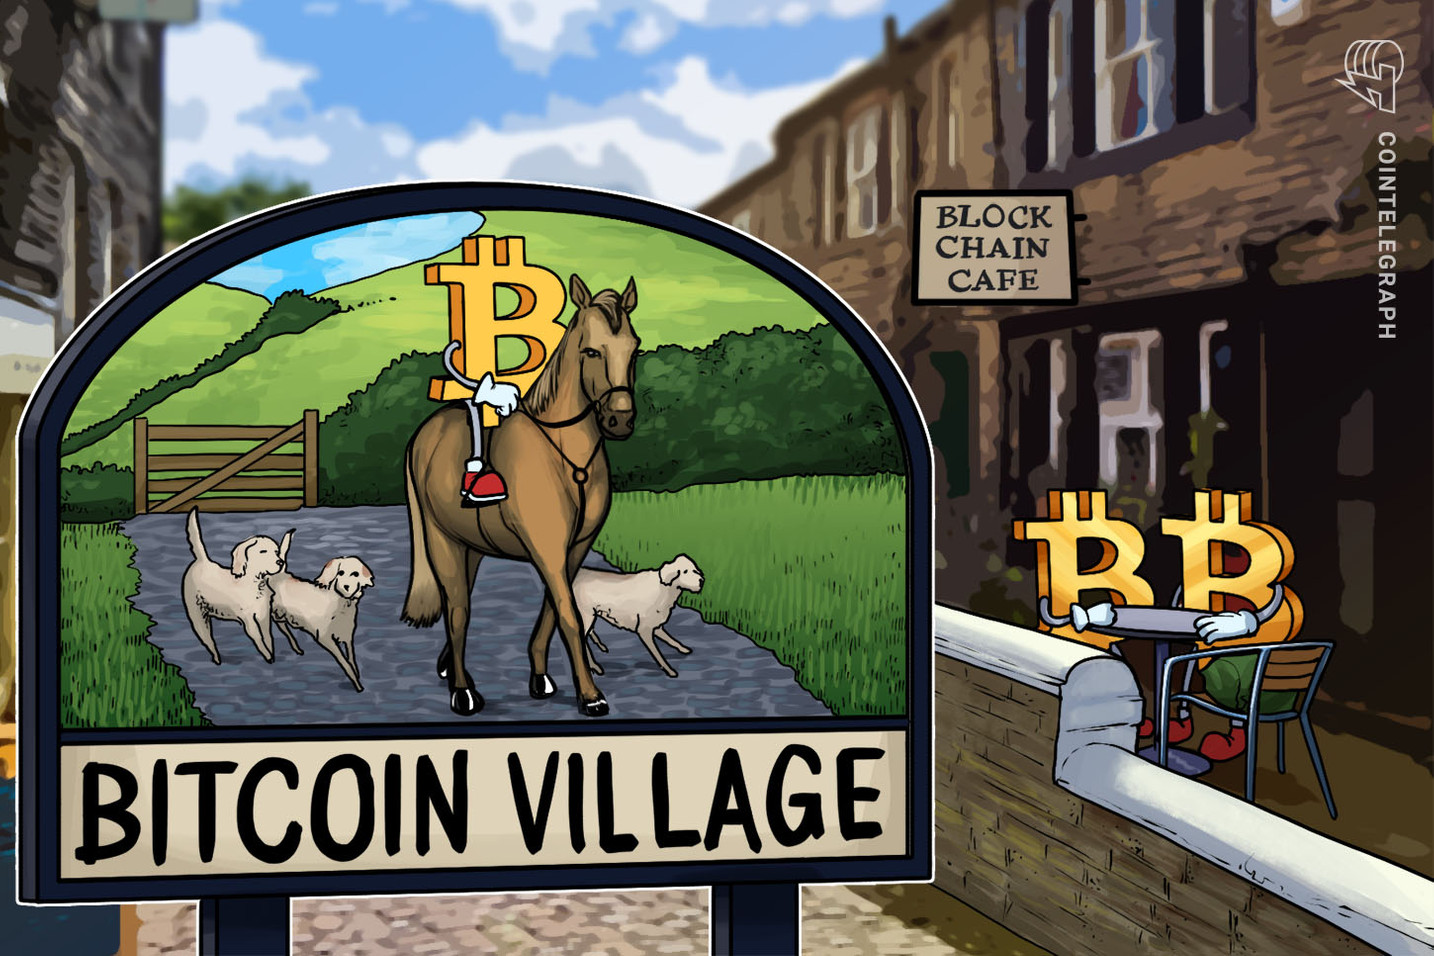 A Village in El Salvador Created a Bitcoin-Friendly Economy Amid COVID-19